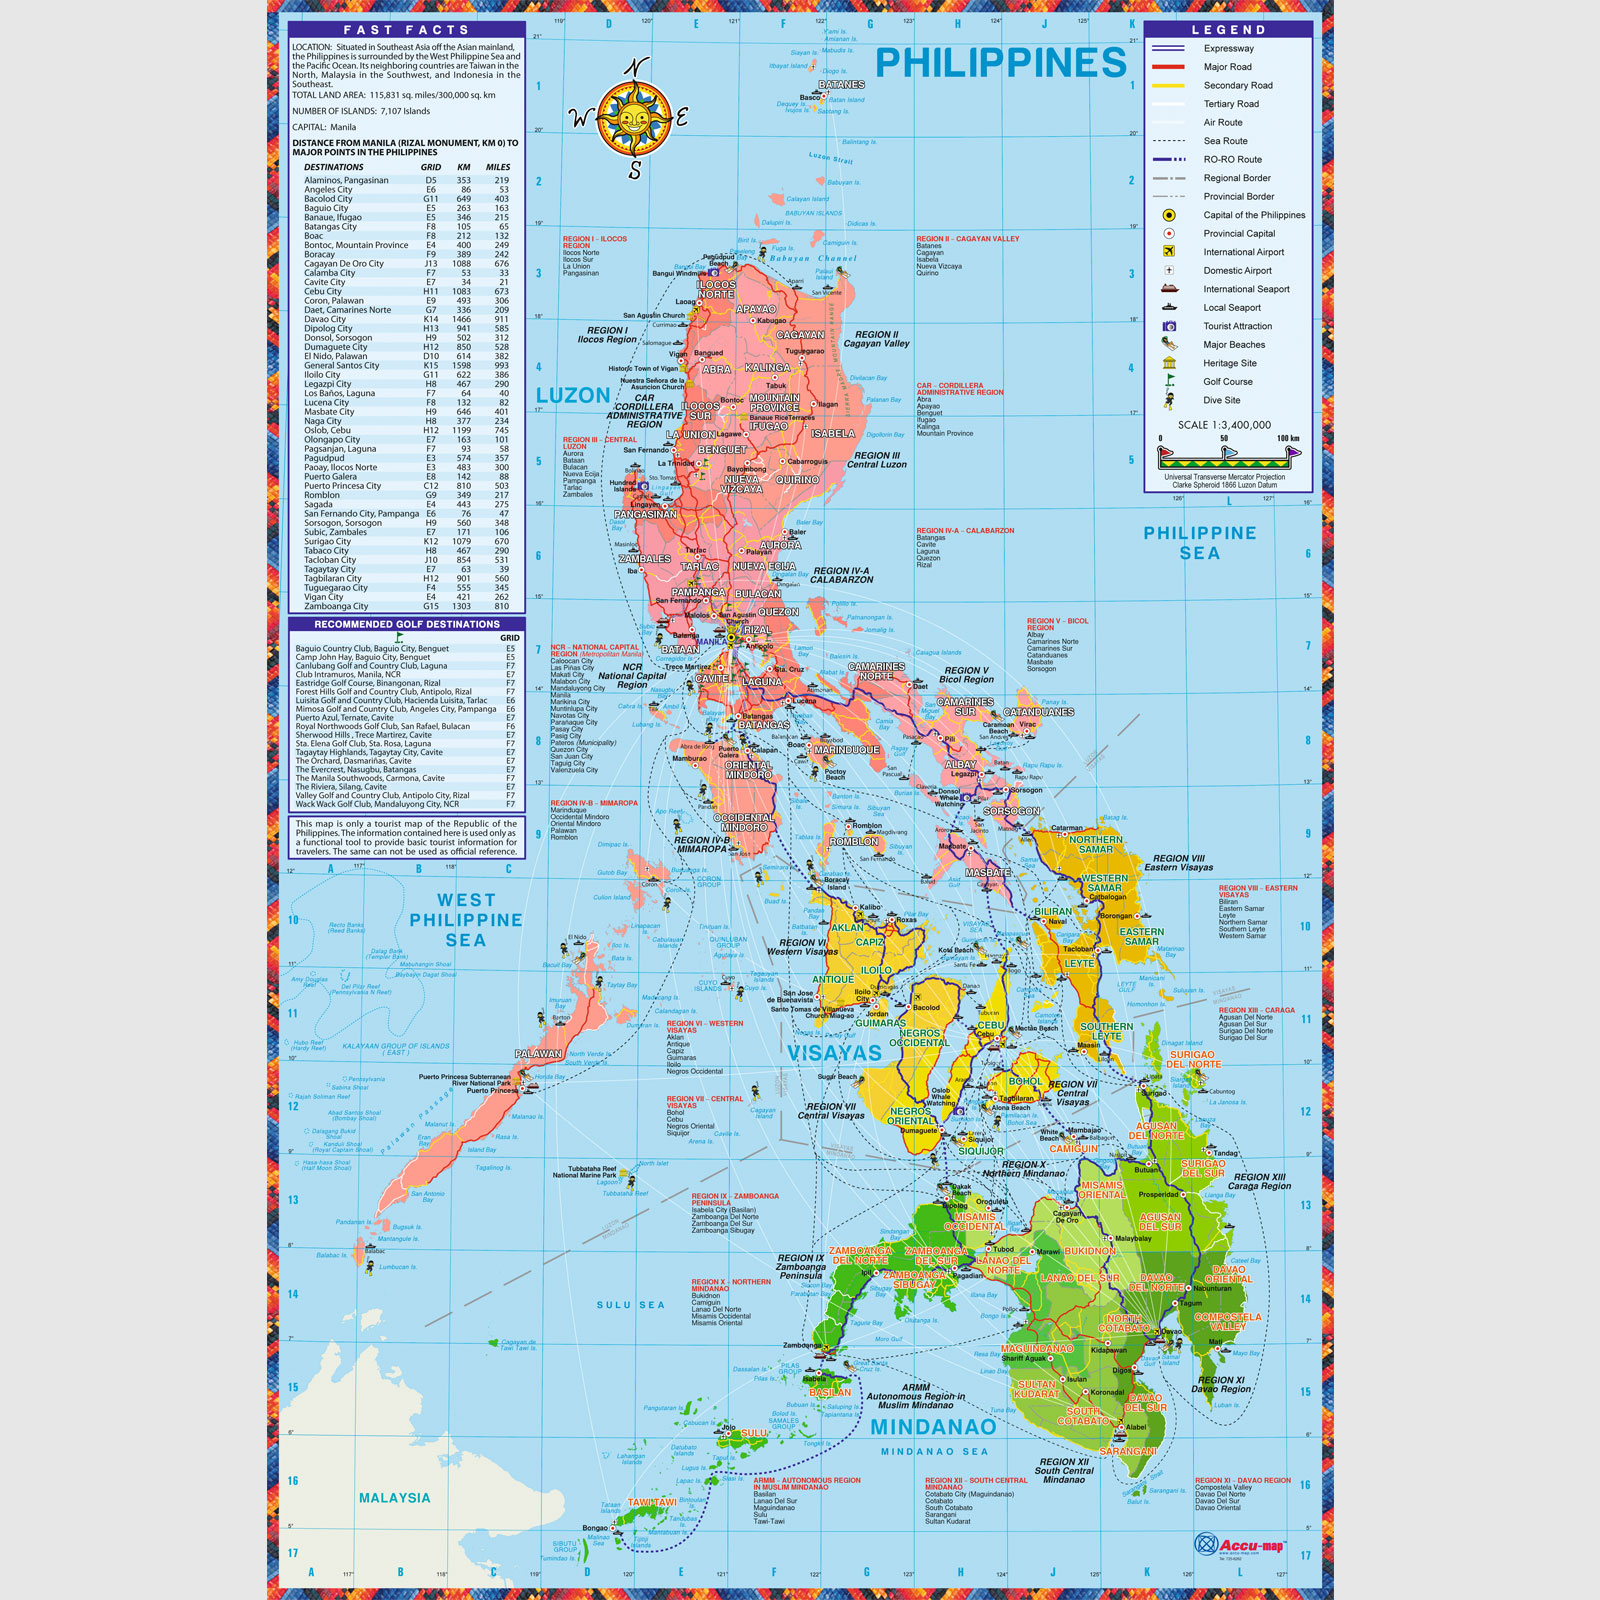 Philippine Map (Political) - Full Customization, Accu-map, Inc.